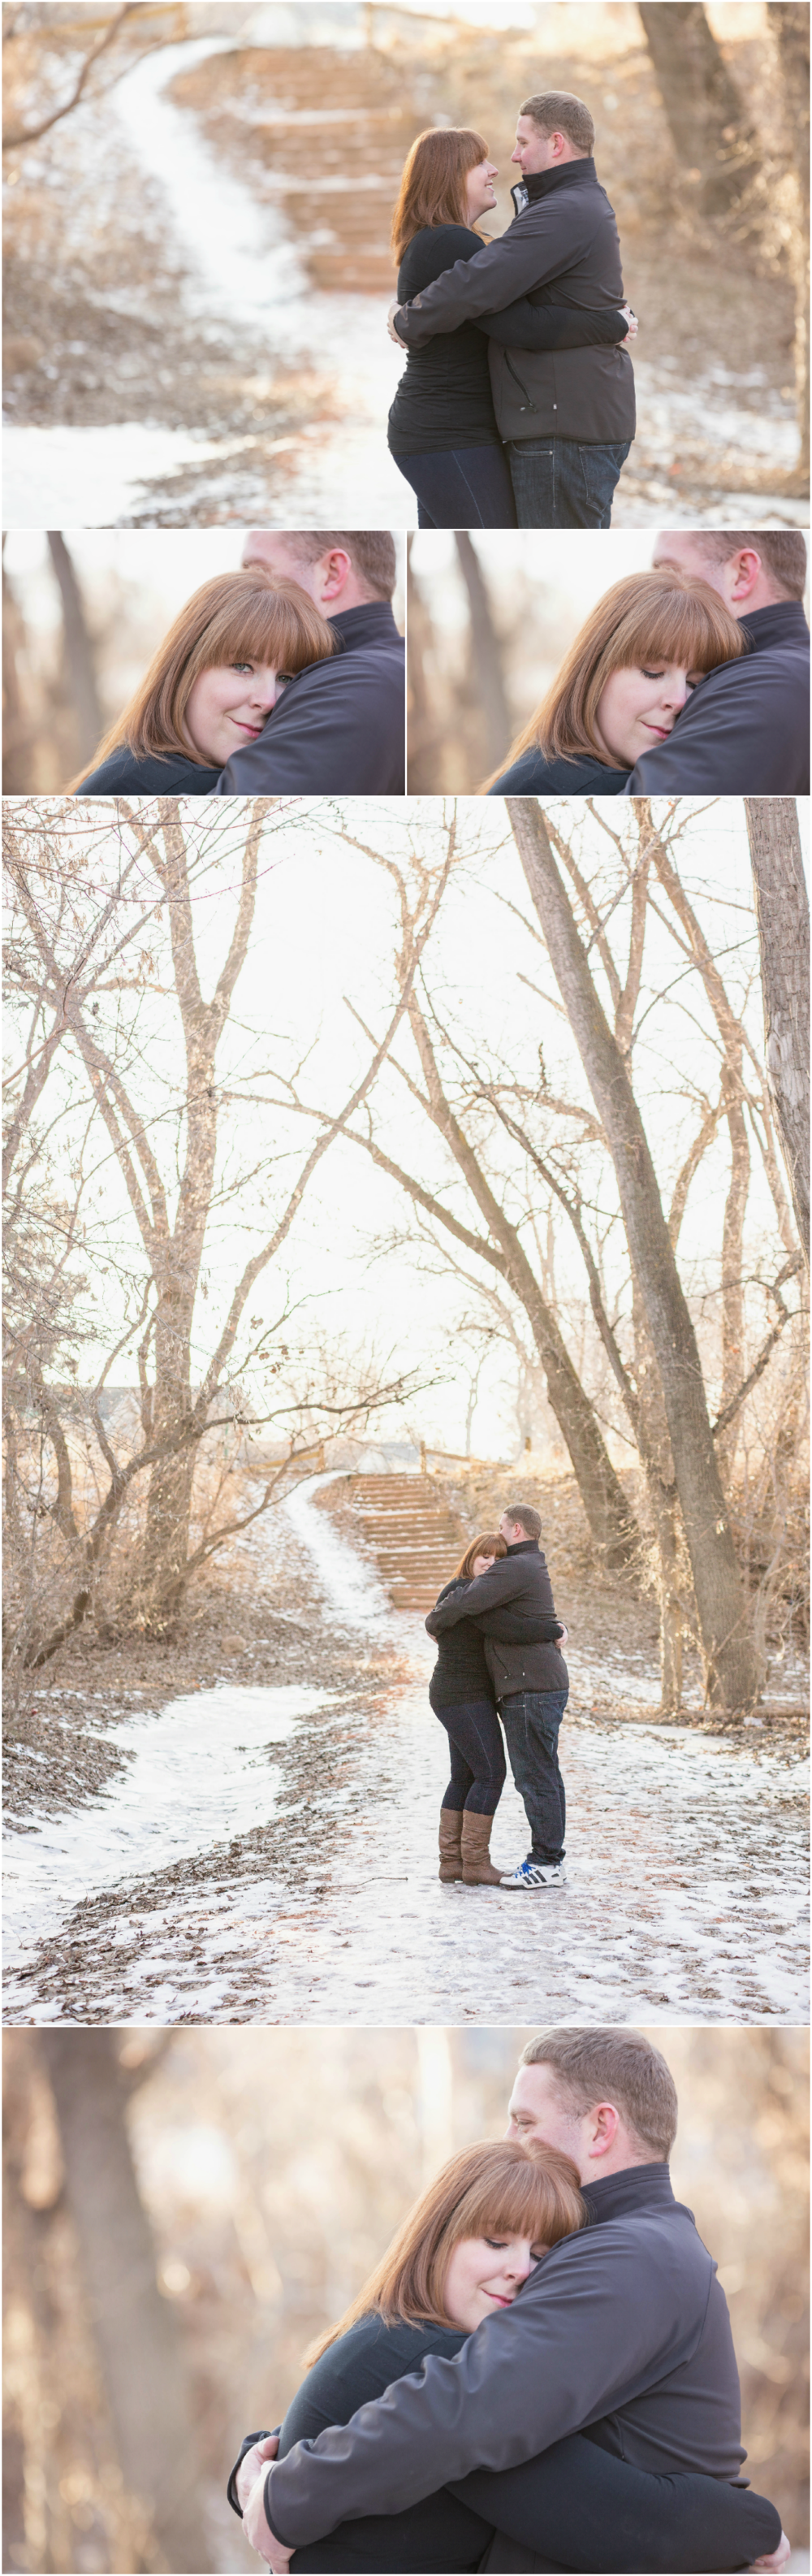 CR_engagement_medicine_hat_photographer5.png